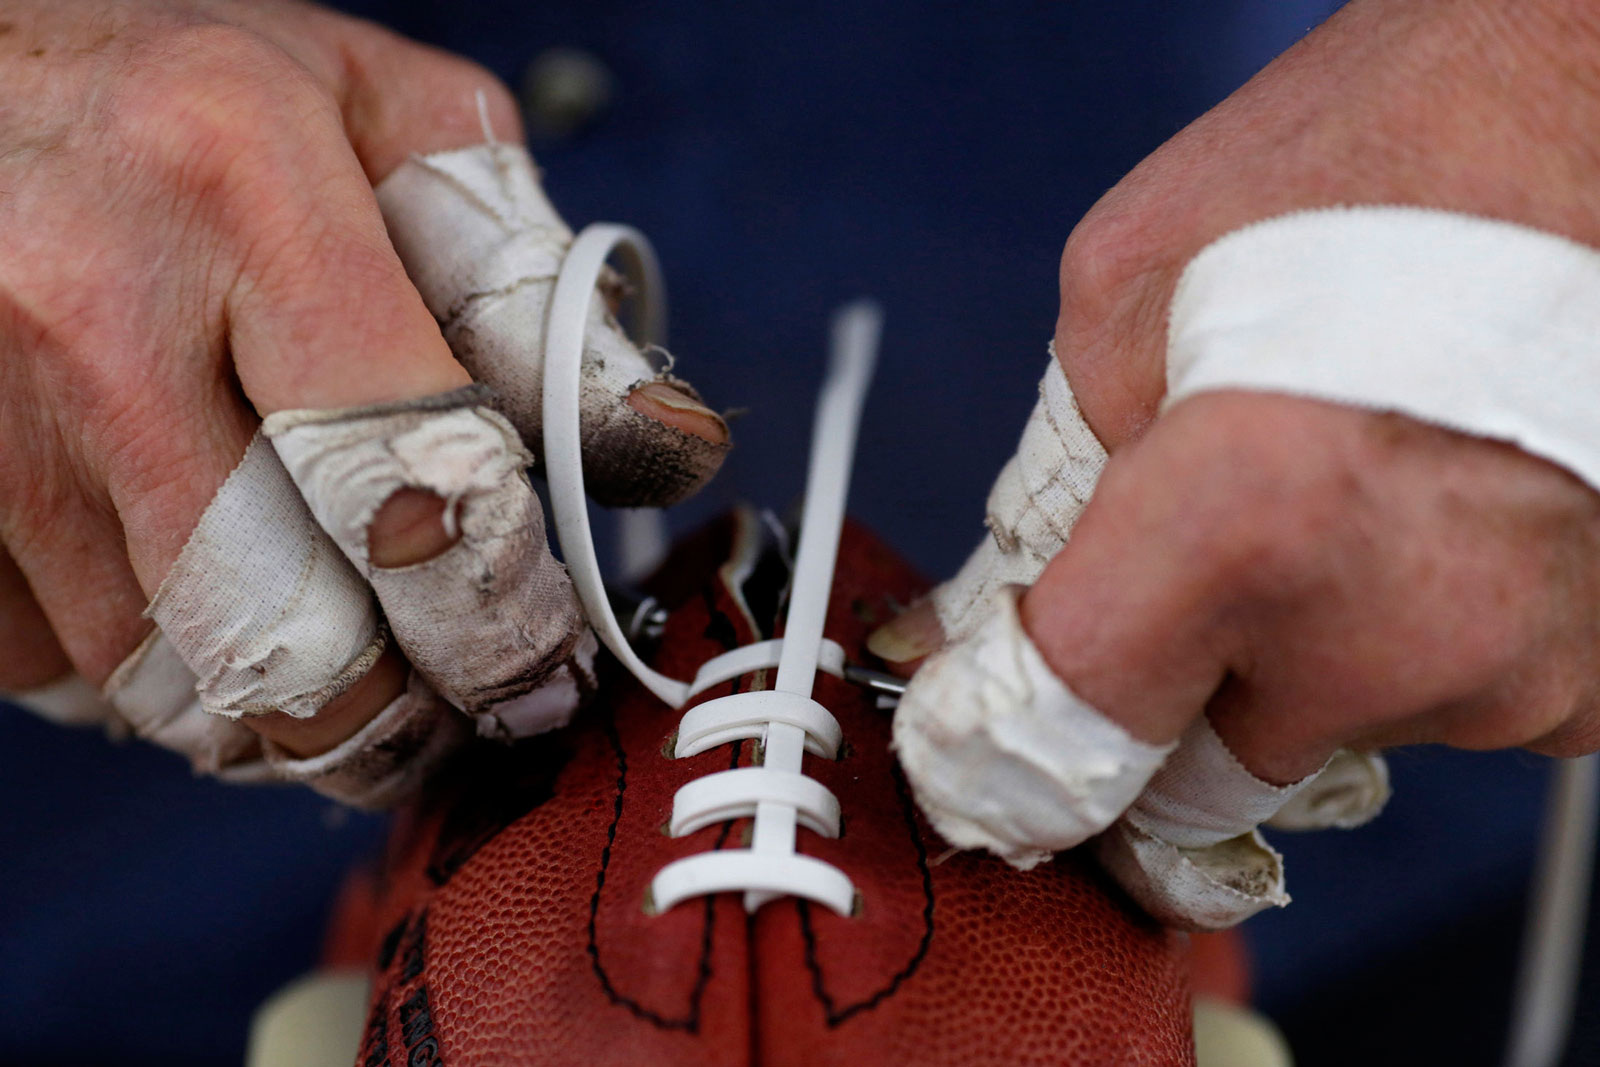 A worker installs laces on a football at the Wilson Sporting Goods factory in Ada, Ohio